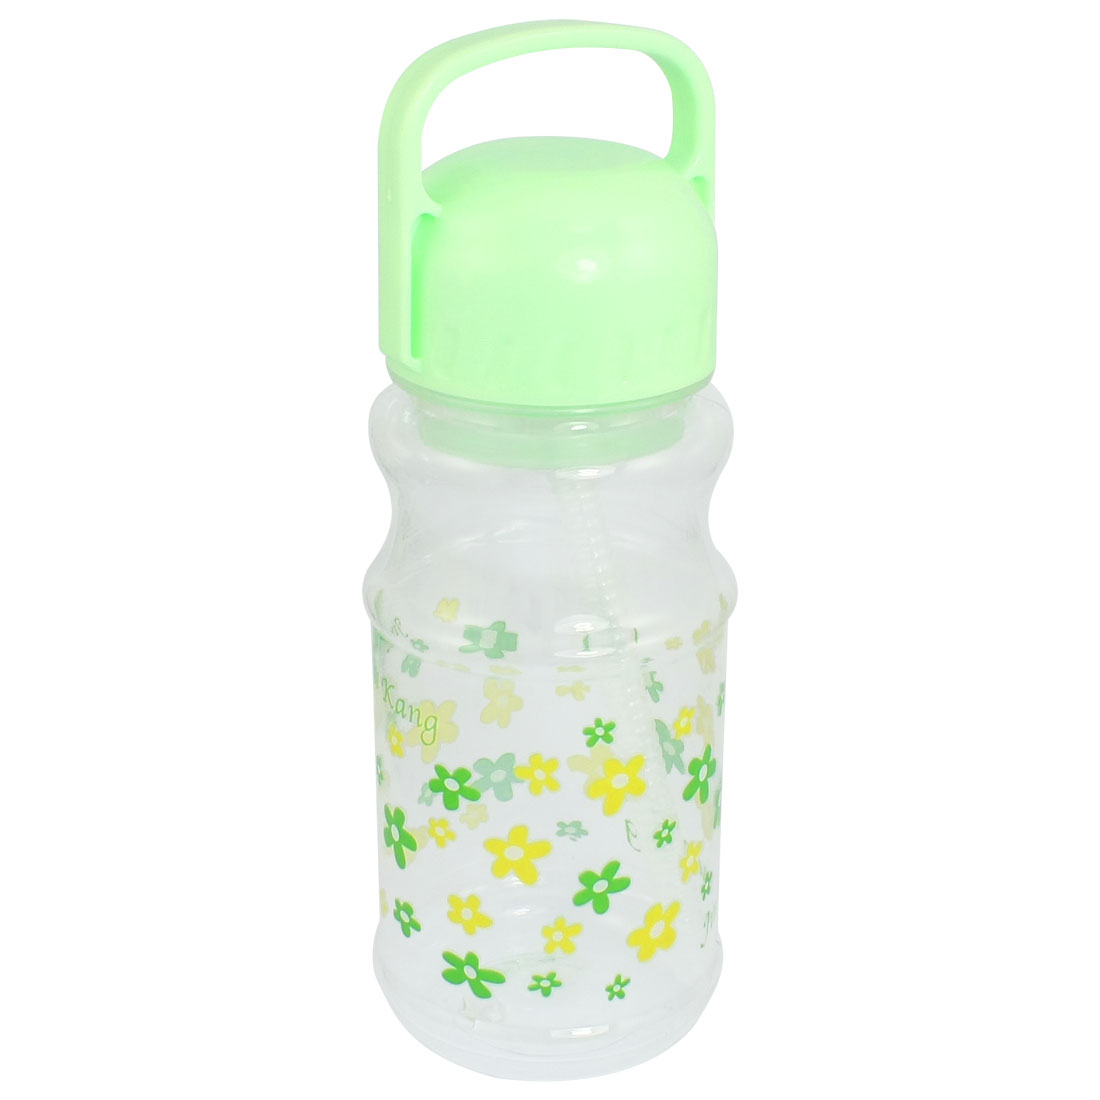 Children 550ml Pale Green Plastic Handheld Water Bottle w Straw Strainer